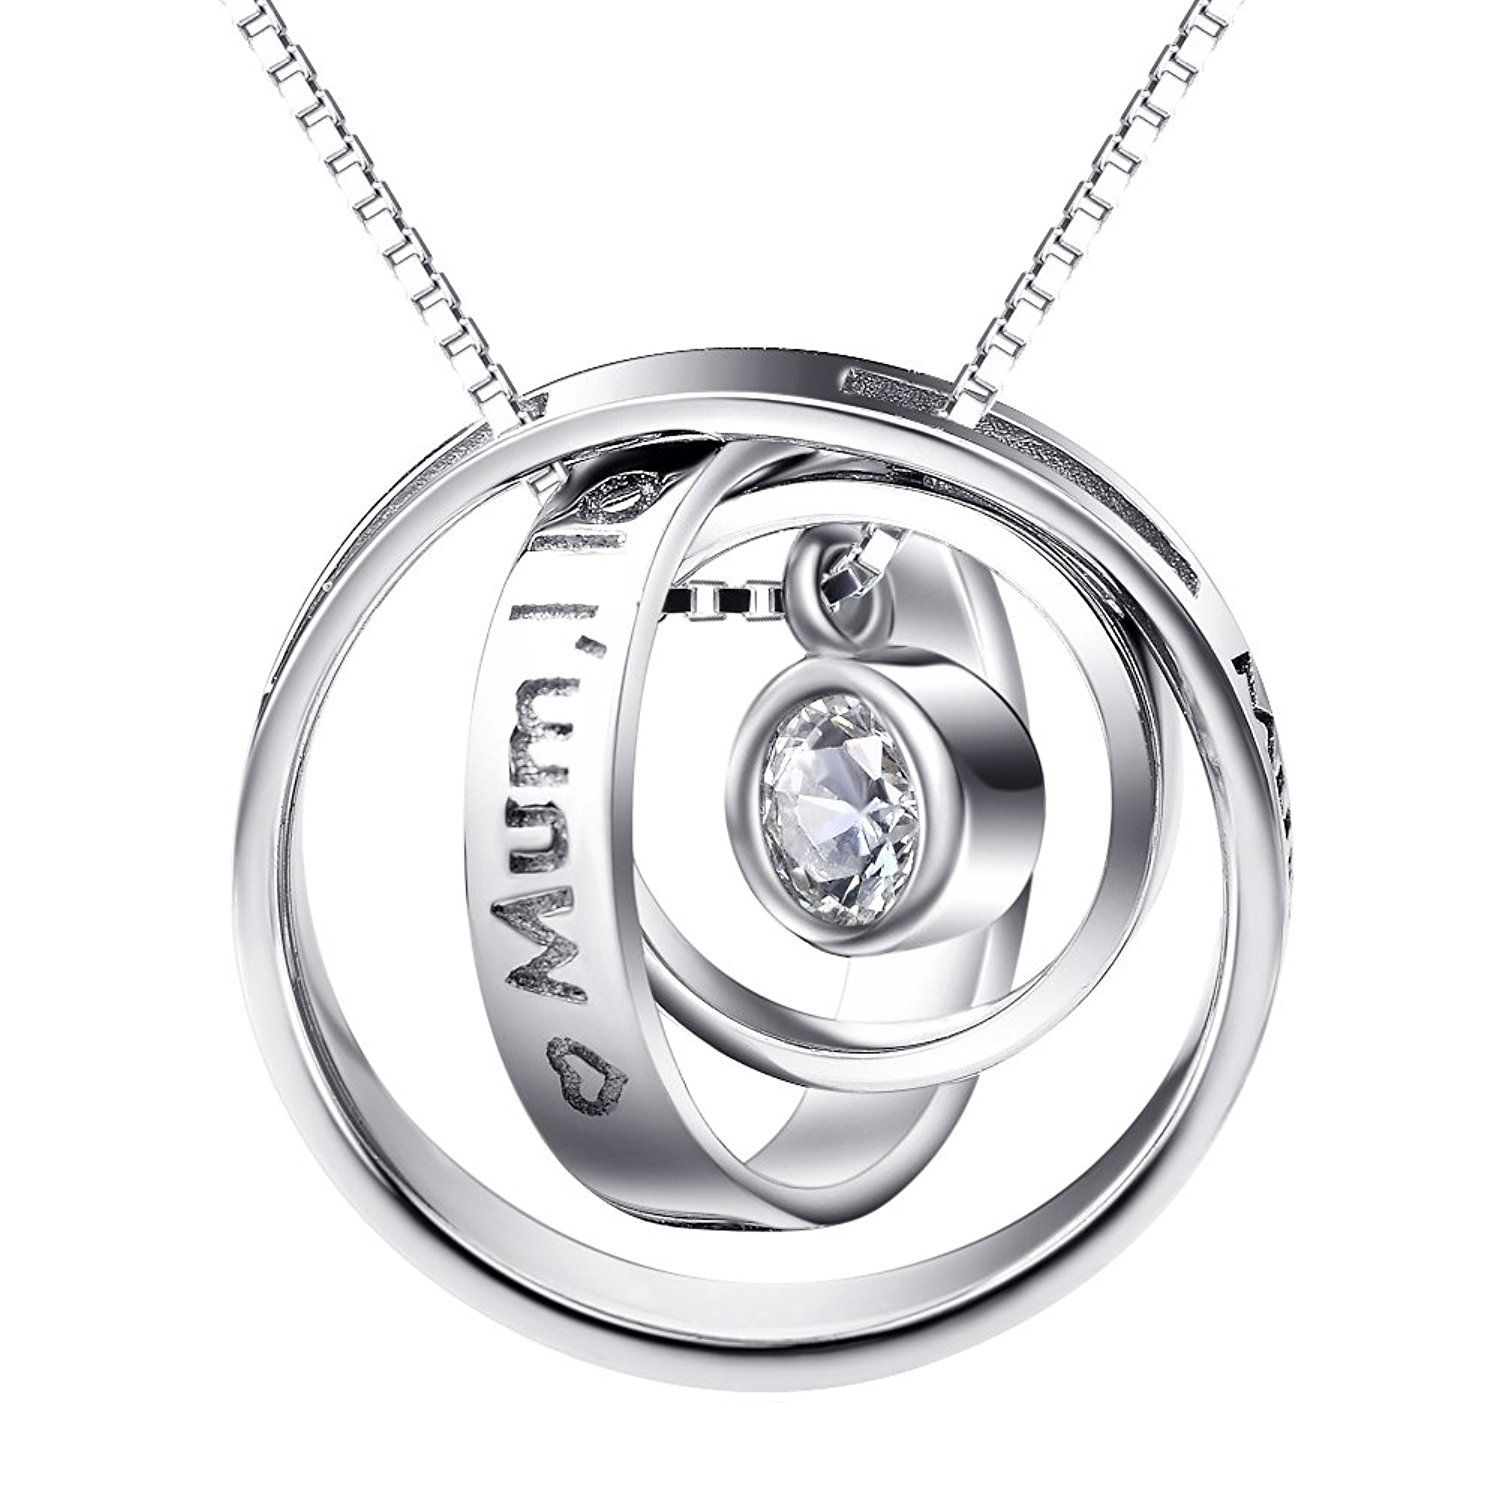 Silver Mountain 925 Sterling Silver Cubic Zirconia Double Cats Pendant Necklace Box Chain 18 bC5NZJrO